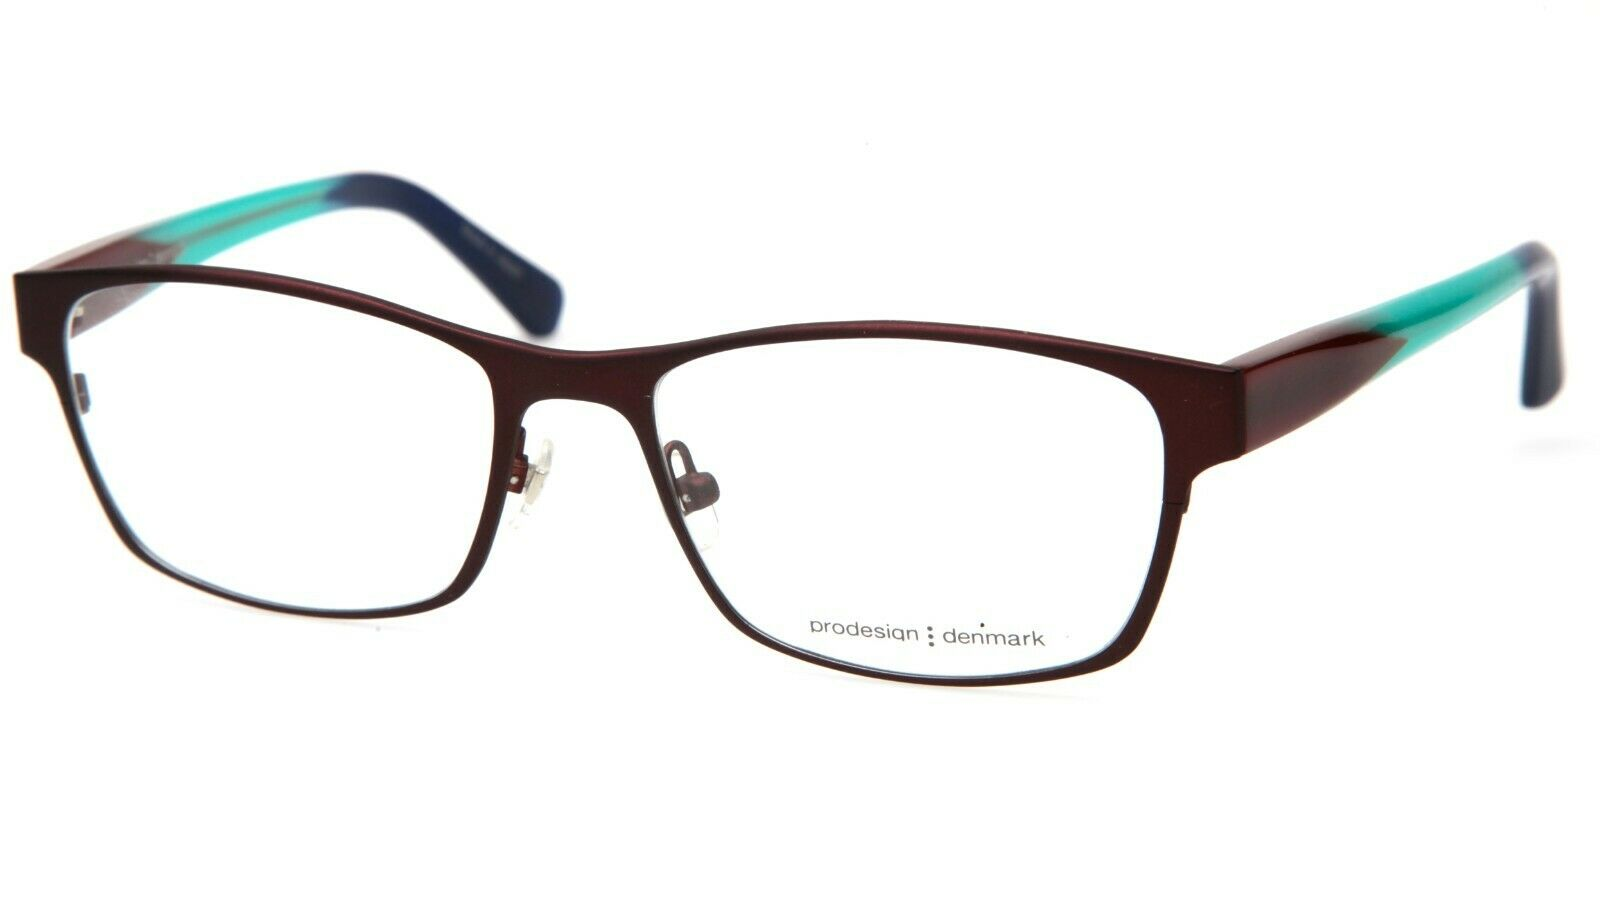 NEW PRODESIGN DENMARK 1721 c.5032 BROWN EYEGLASSES FRAME 48-19-140 ...